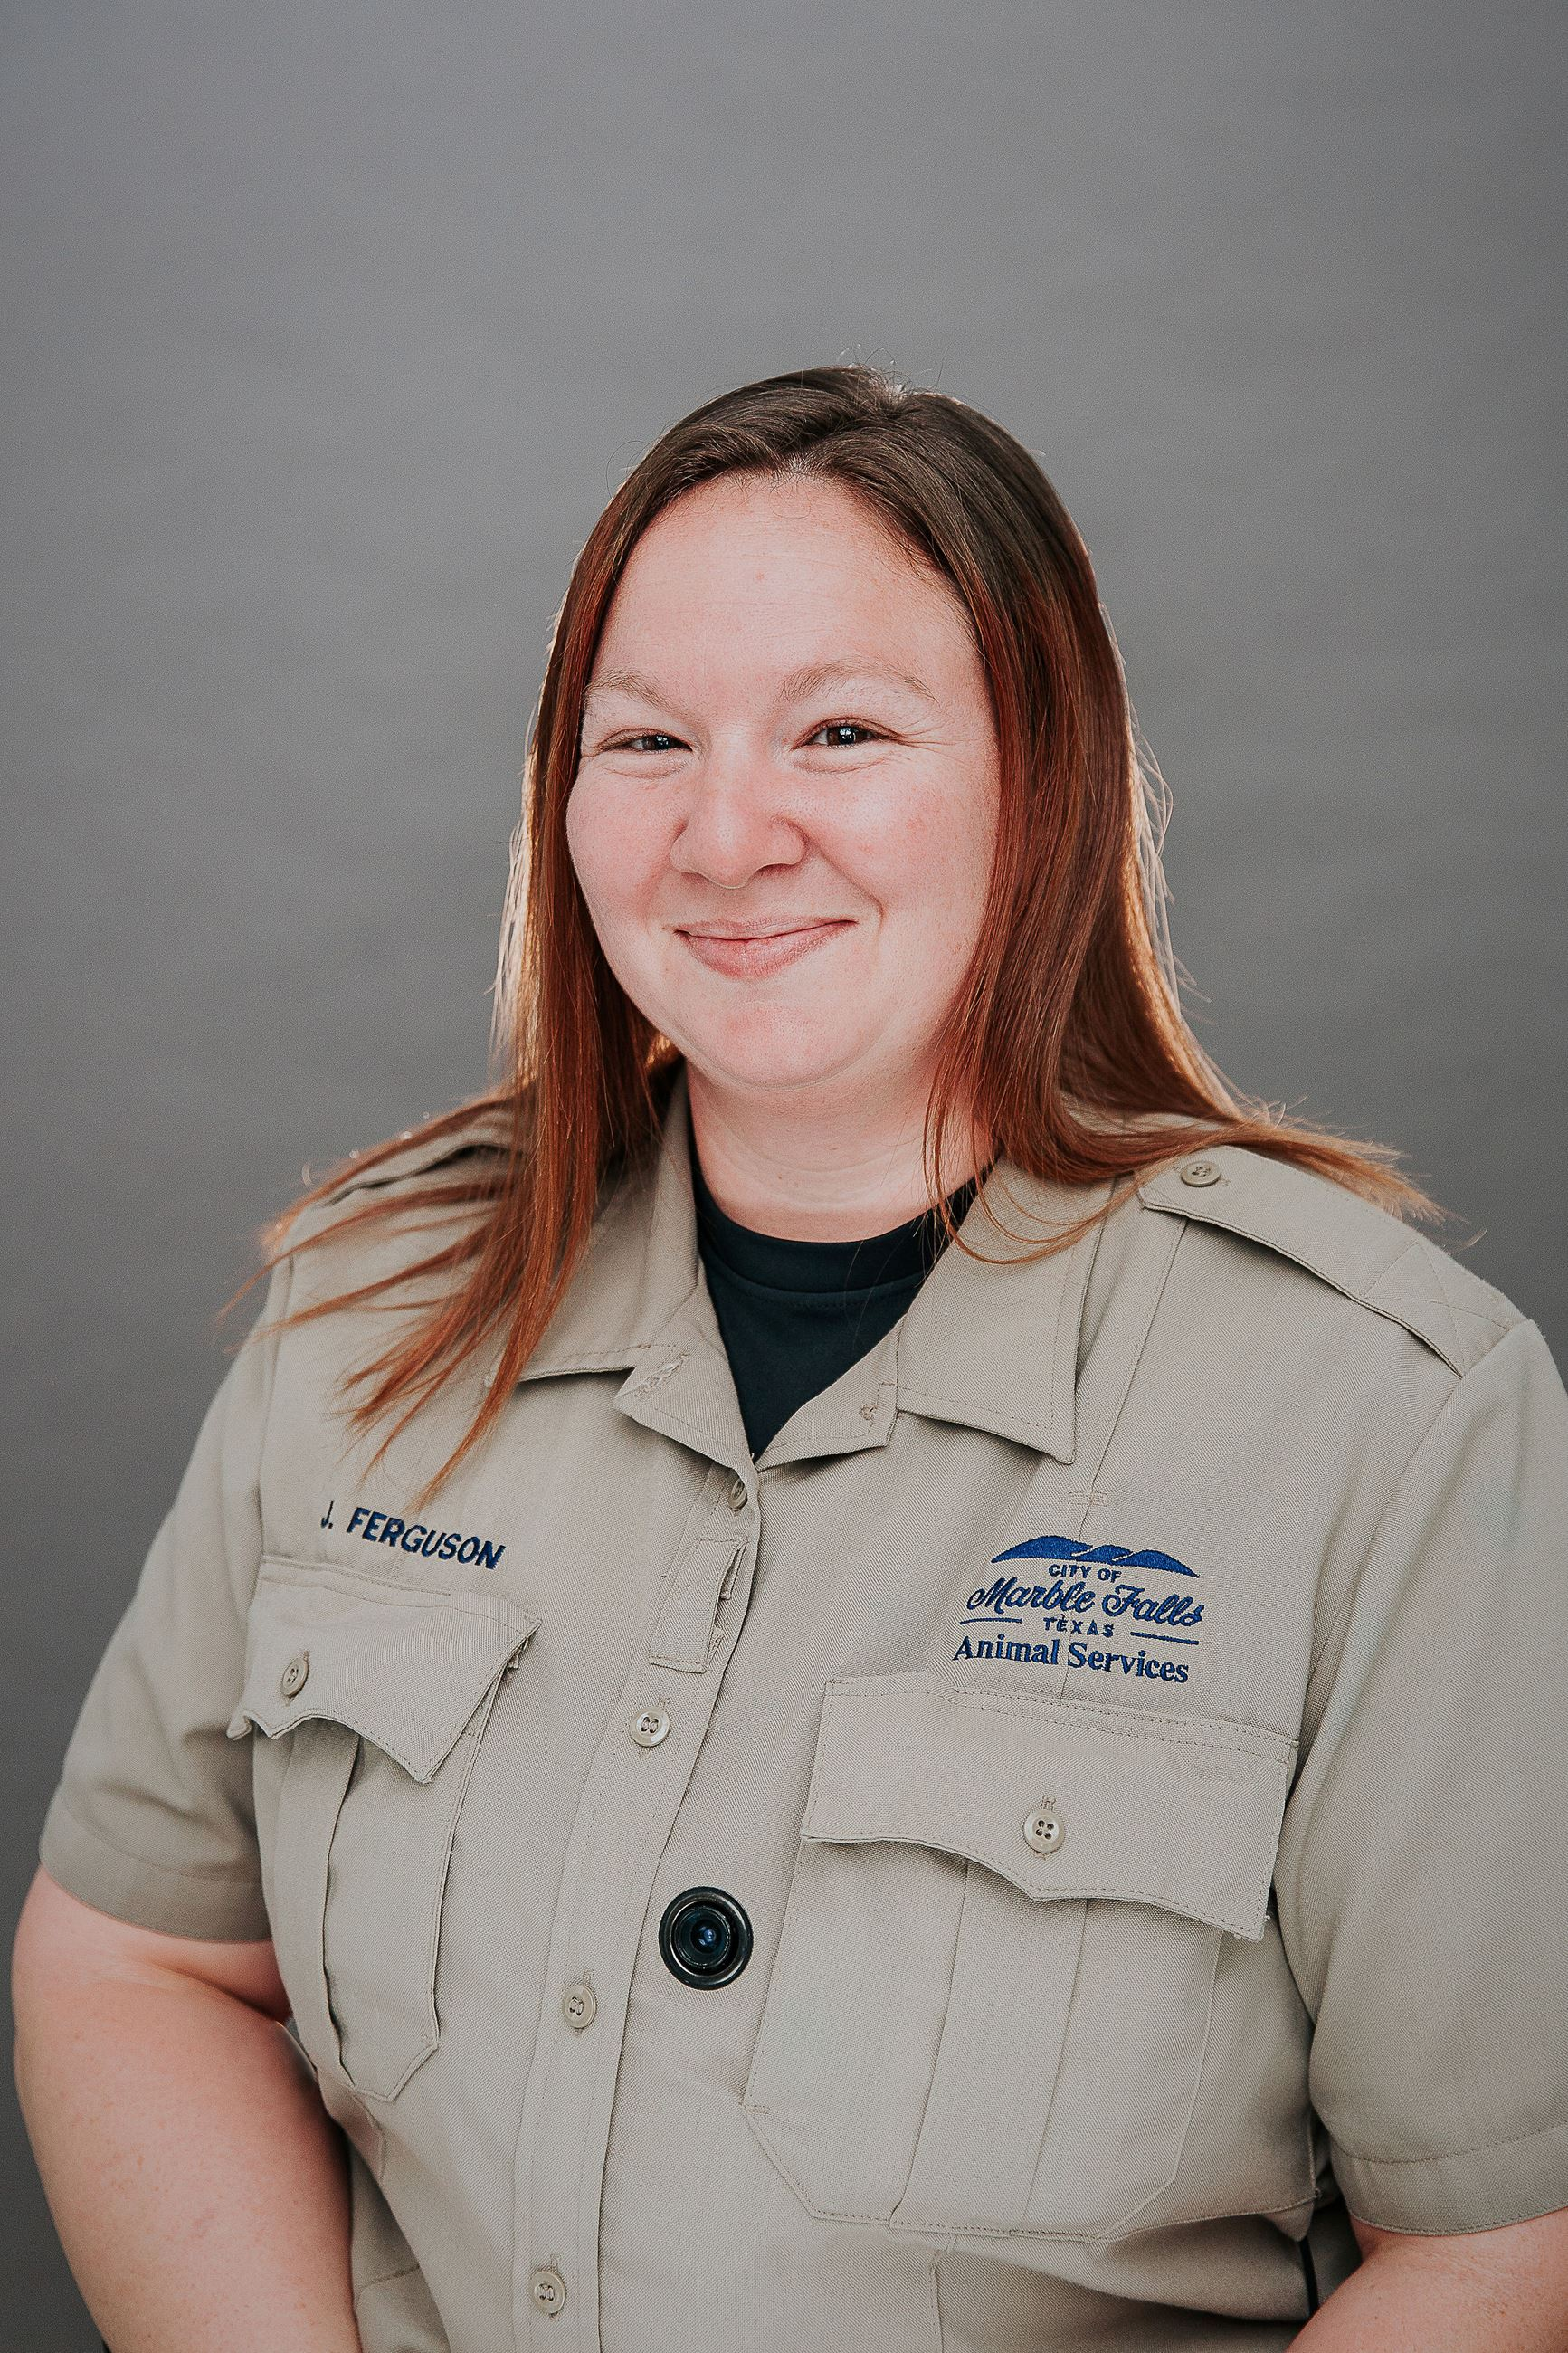 Animal Control Officer Jacey Ferguson